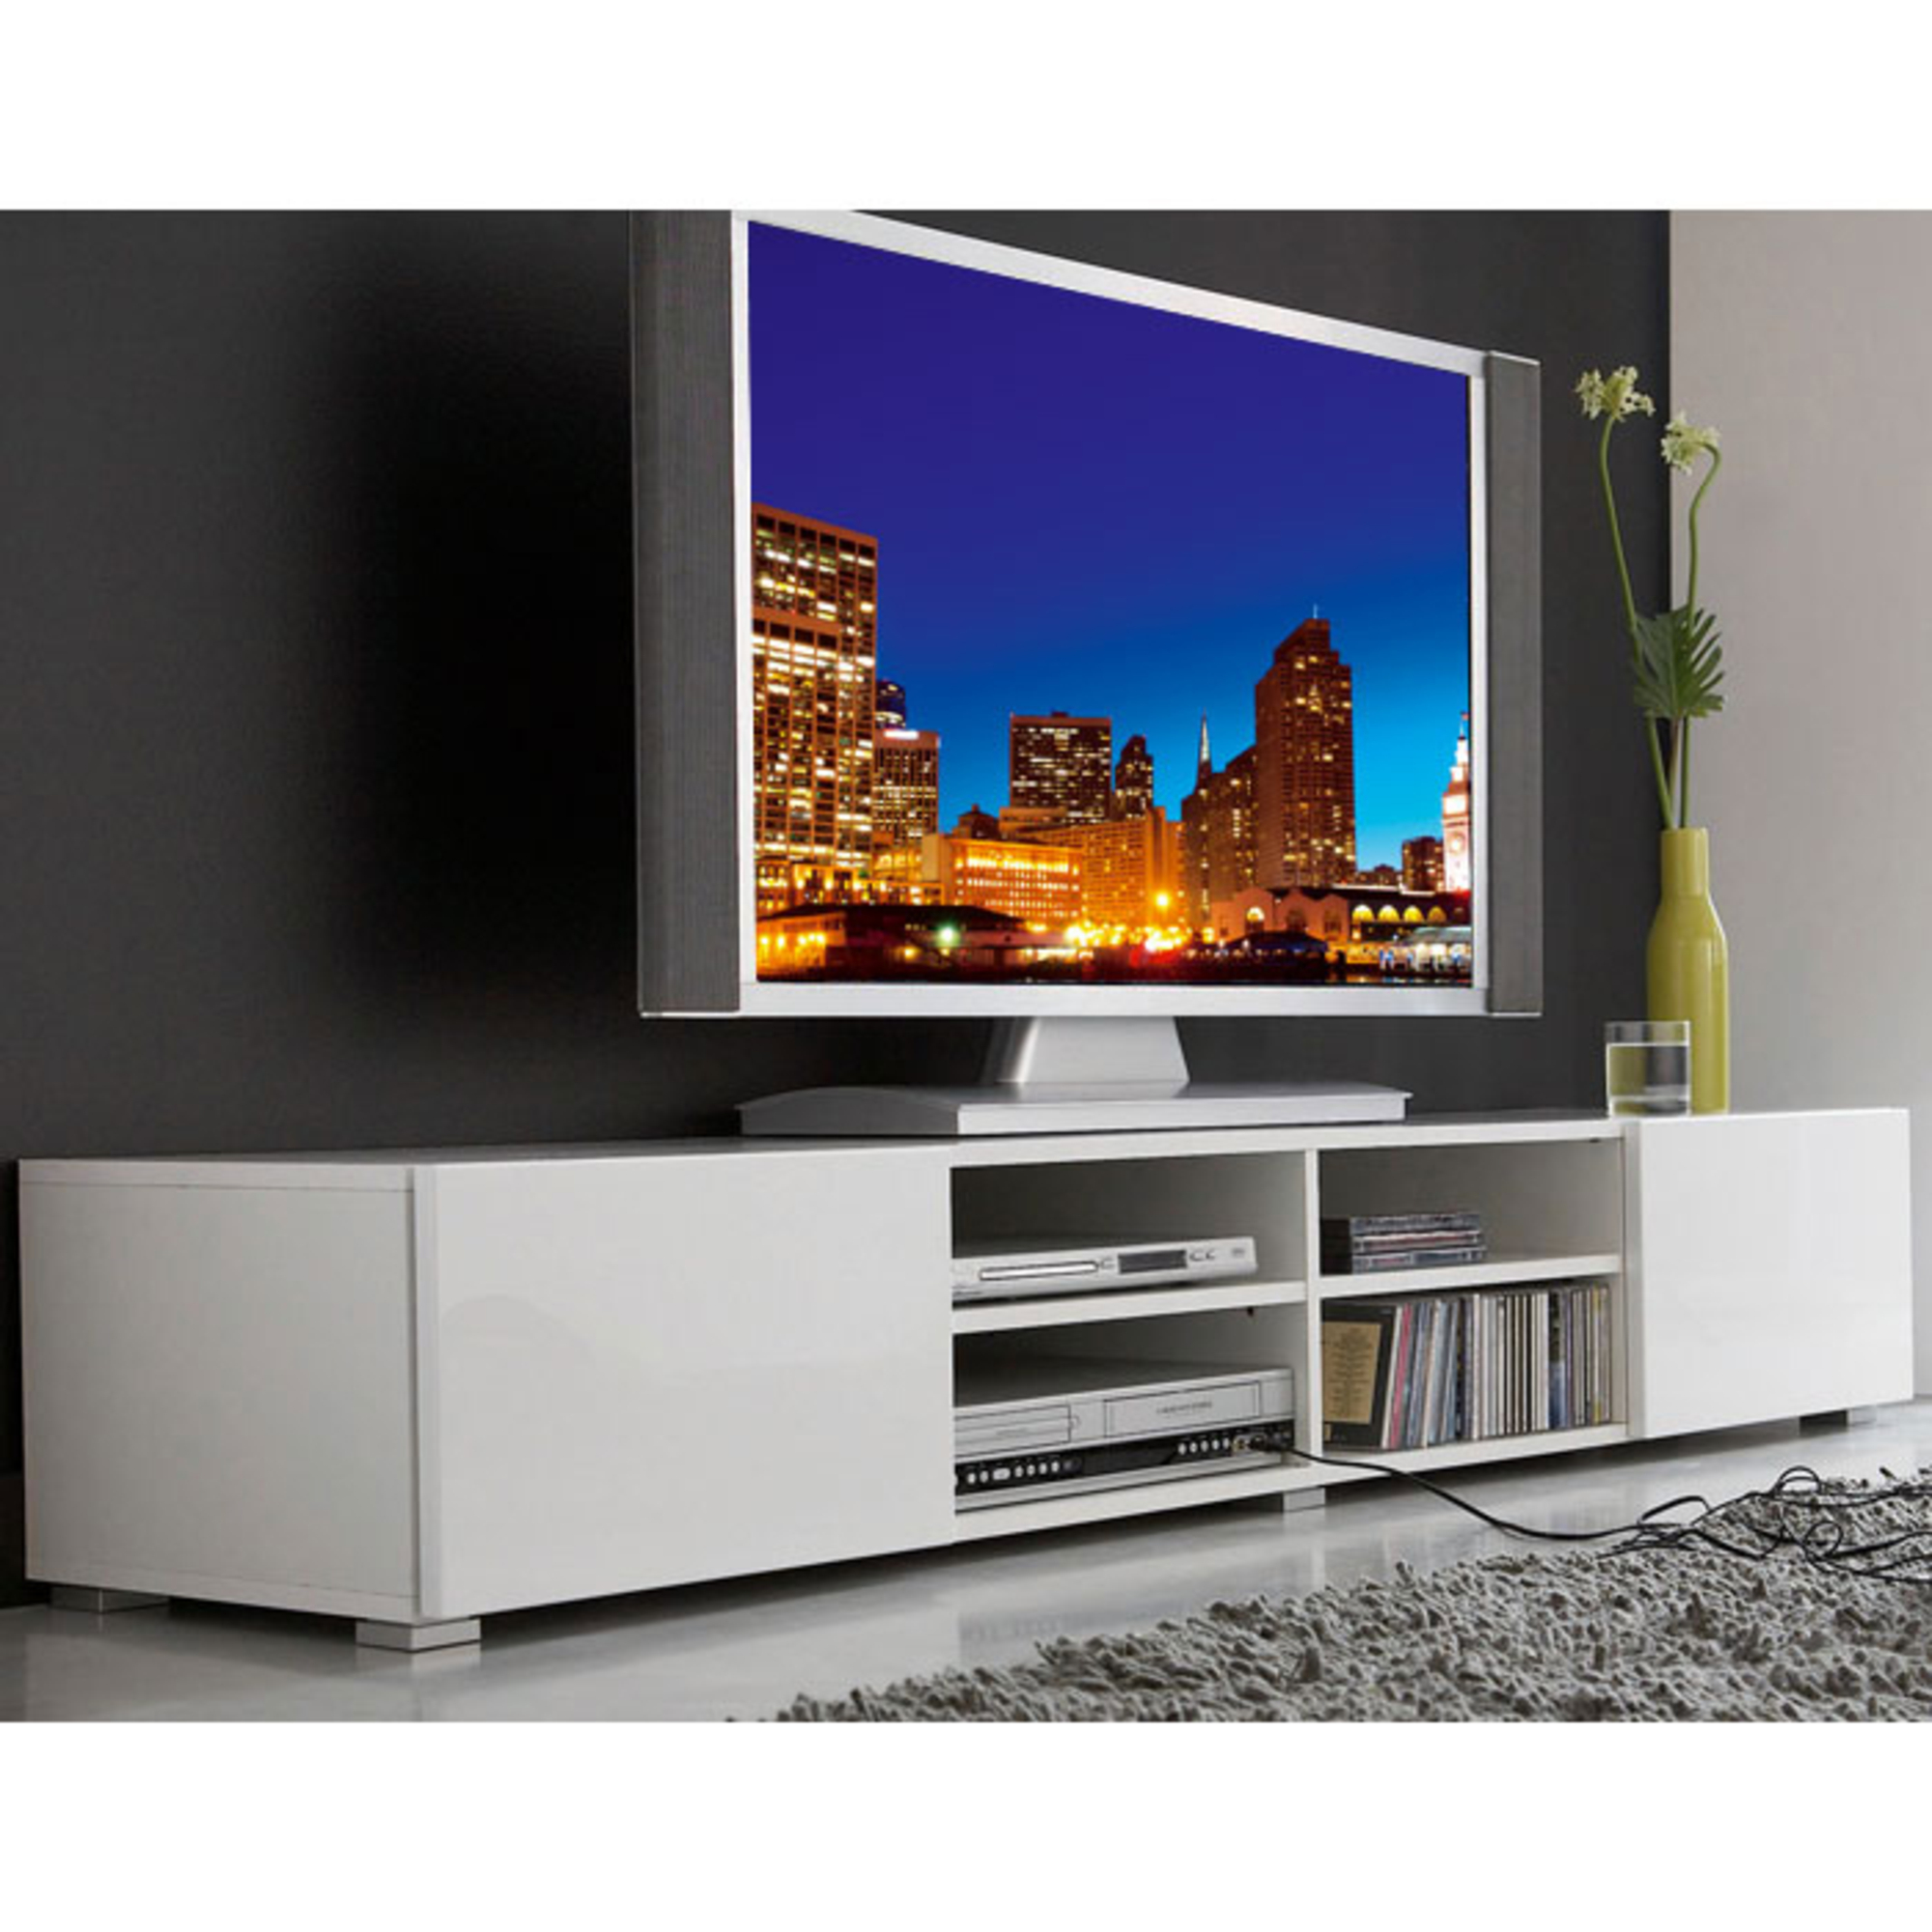 Meuble tv 4 niches royal sofa id e de canap et meuble for Meuble tv 4 metres